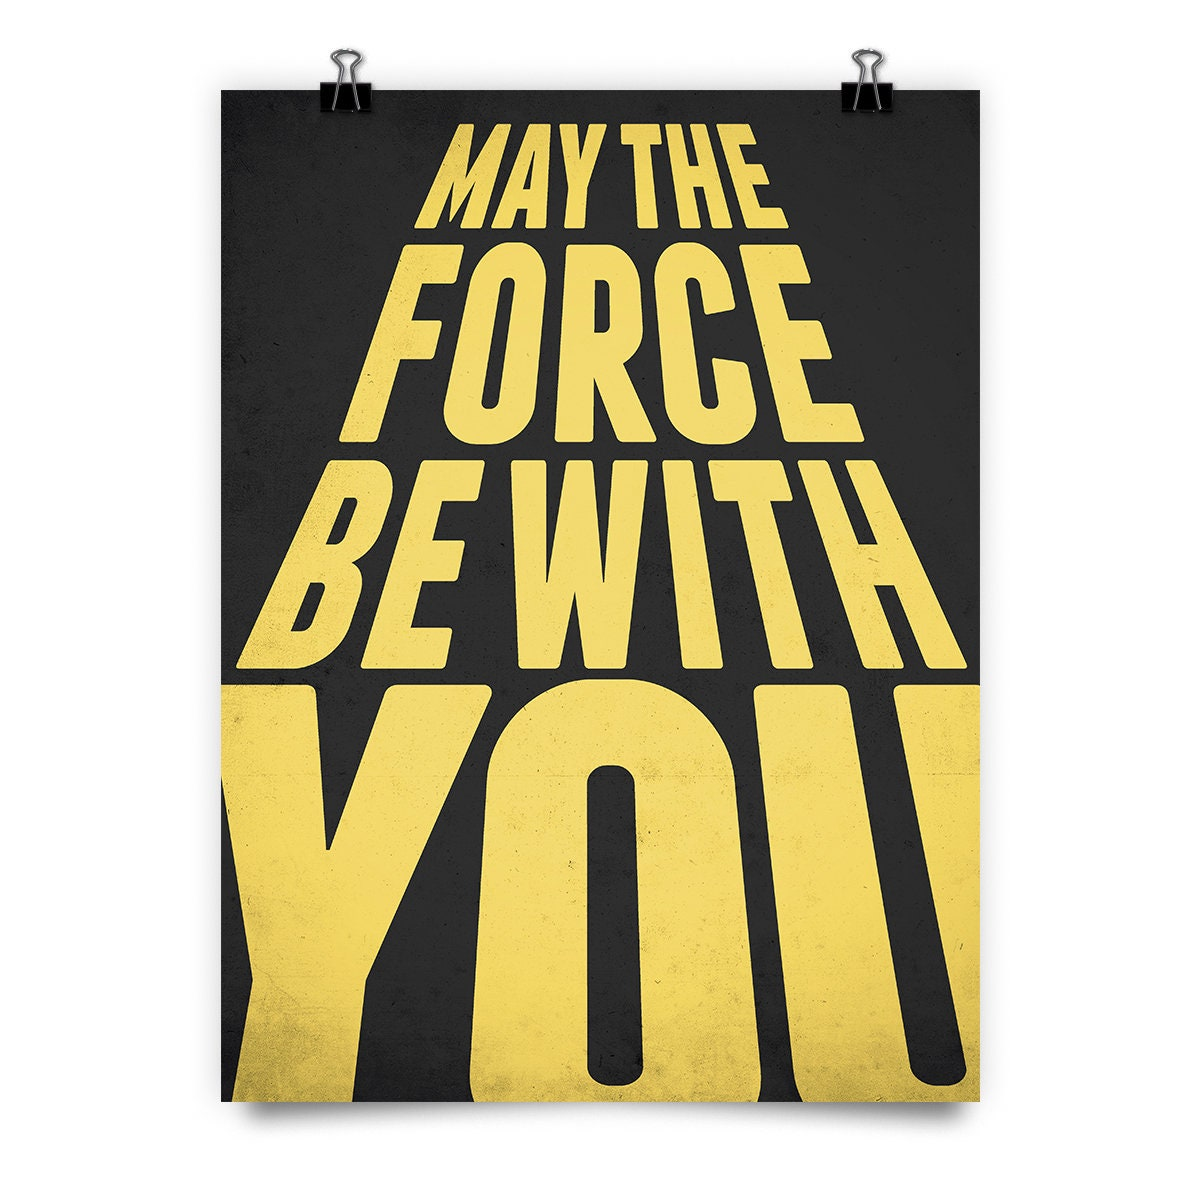 May The Force Be with you print, Best friend gift, Star wars bedroom, Star wars poster, Wall decor, Star wars decor, Movie poster